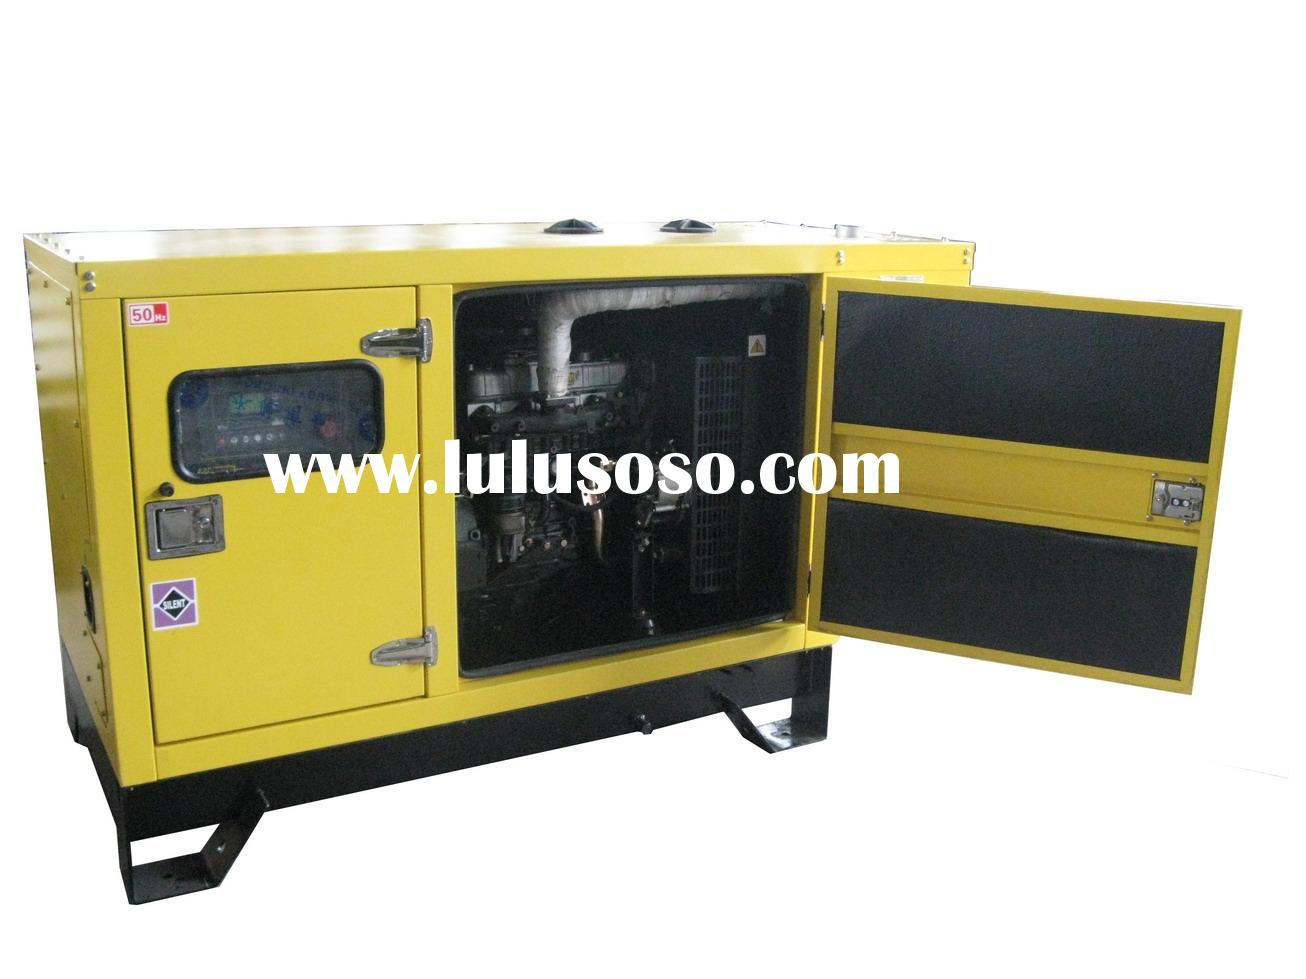 20-1000kw Cummins power diesel generator set